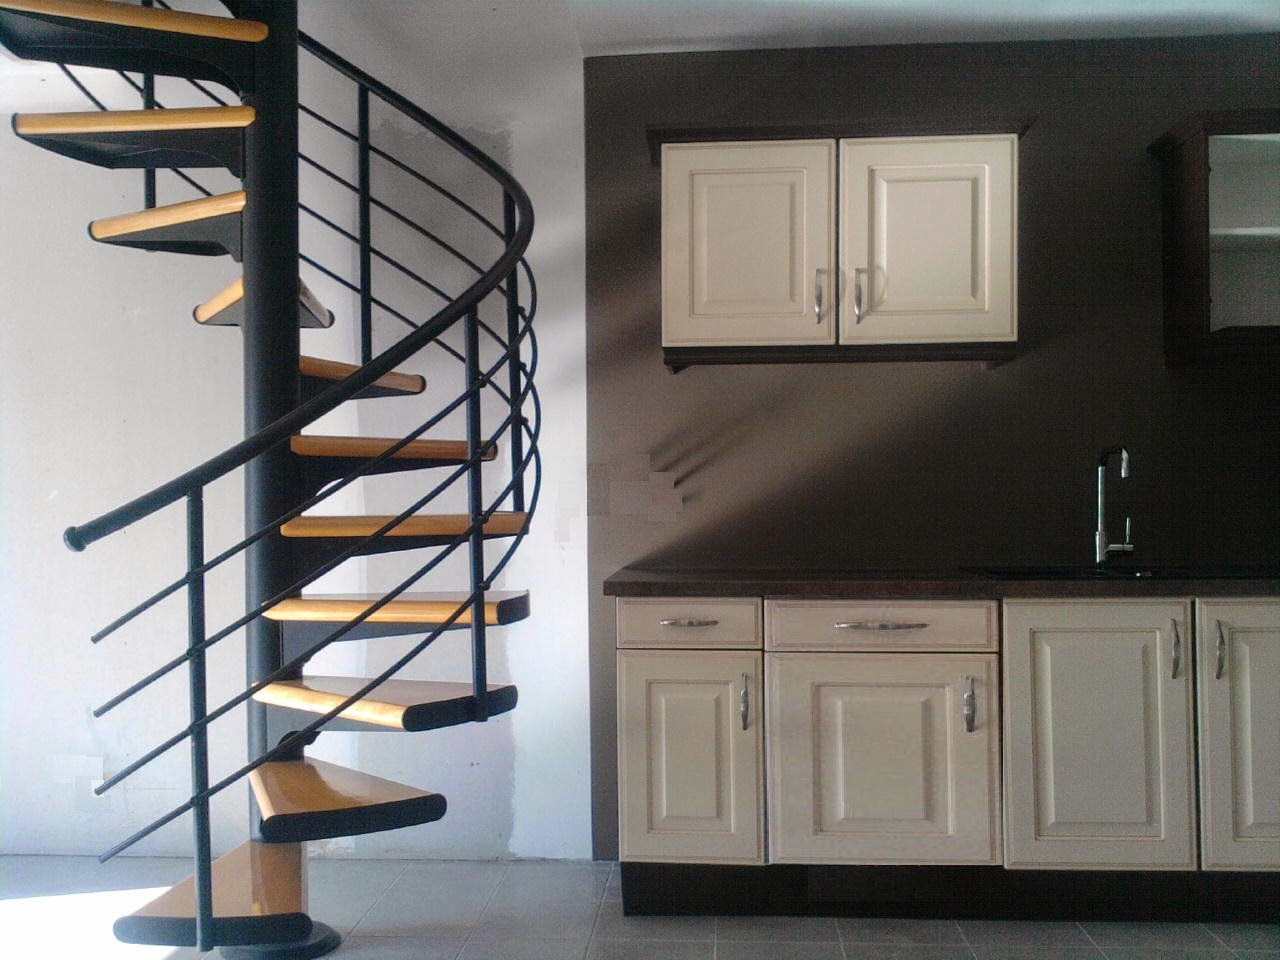 Stair Designs For Small Houses Space Saving Stairs Designs For Small Homes Stairs Designs